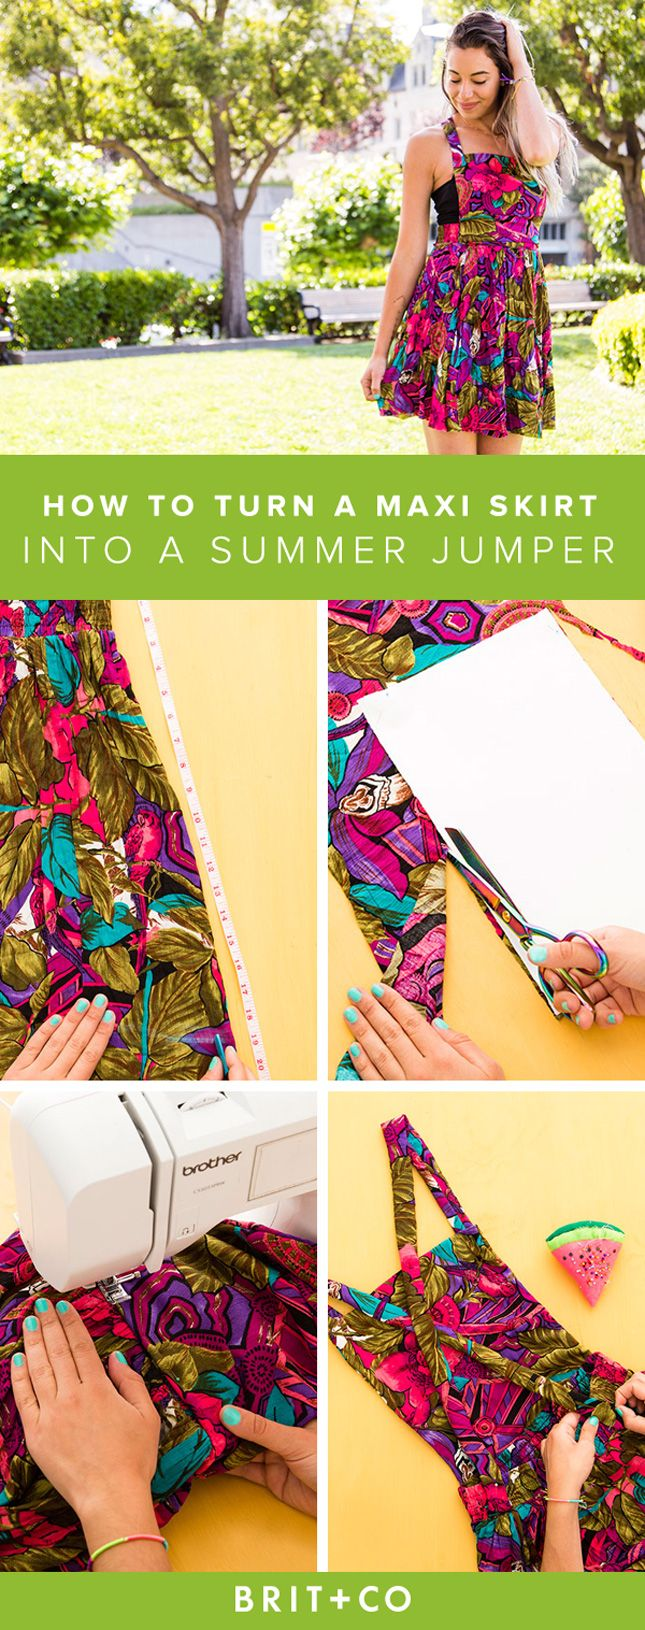 Make this super easy + cute summer jumper with this simple guide.